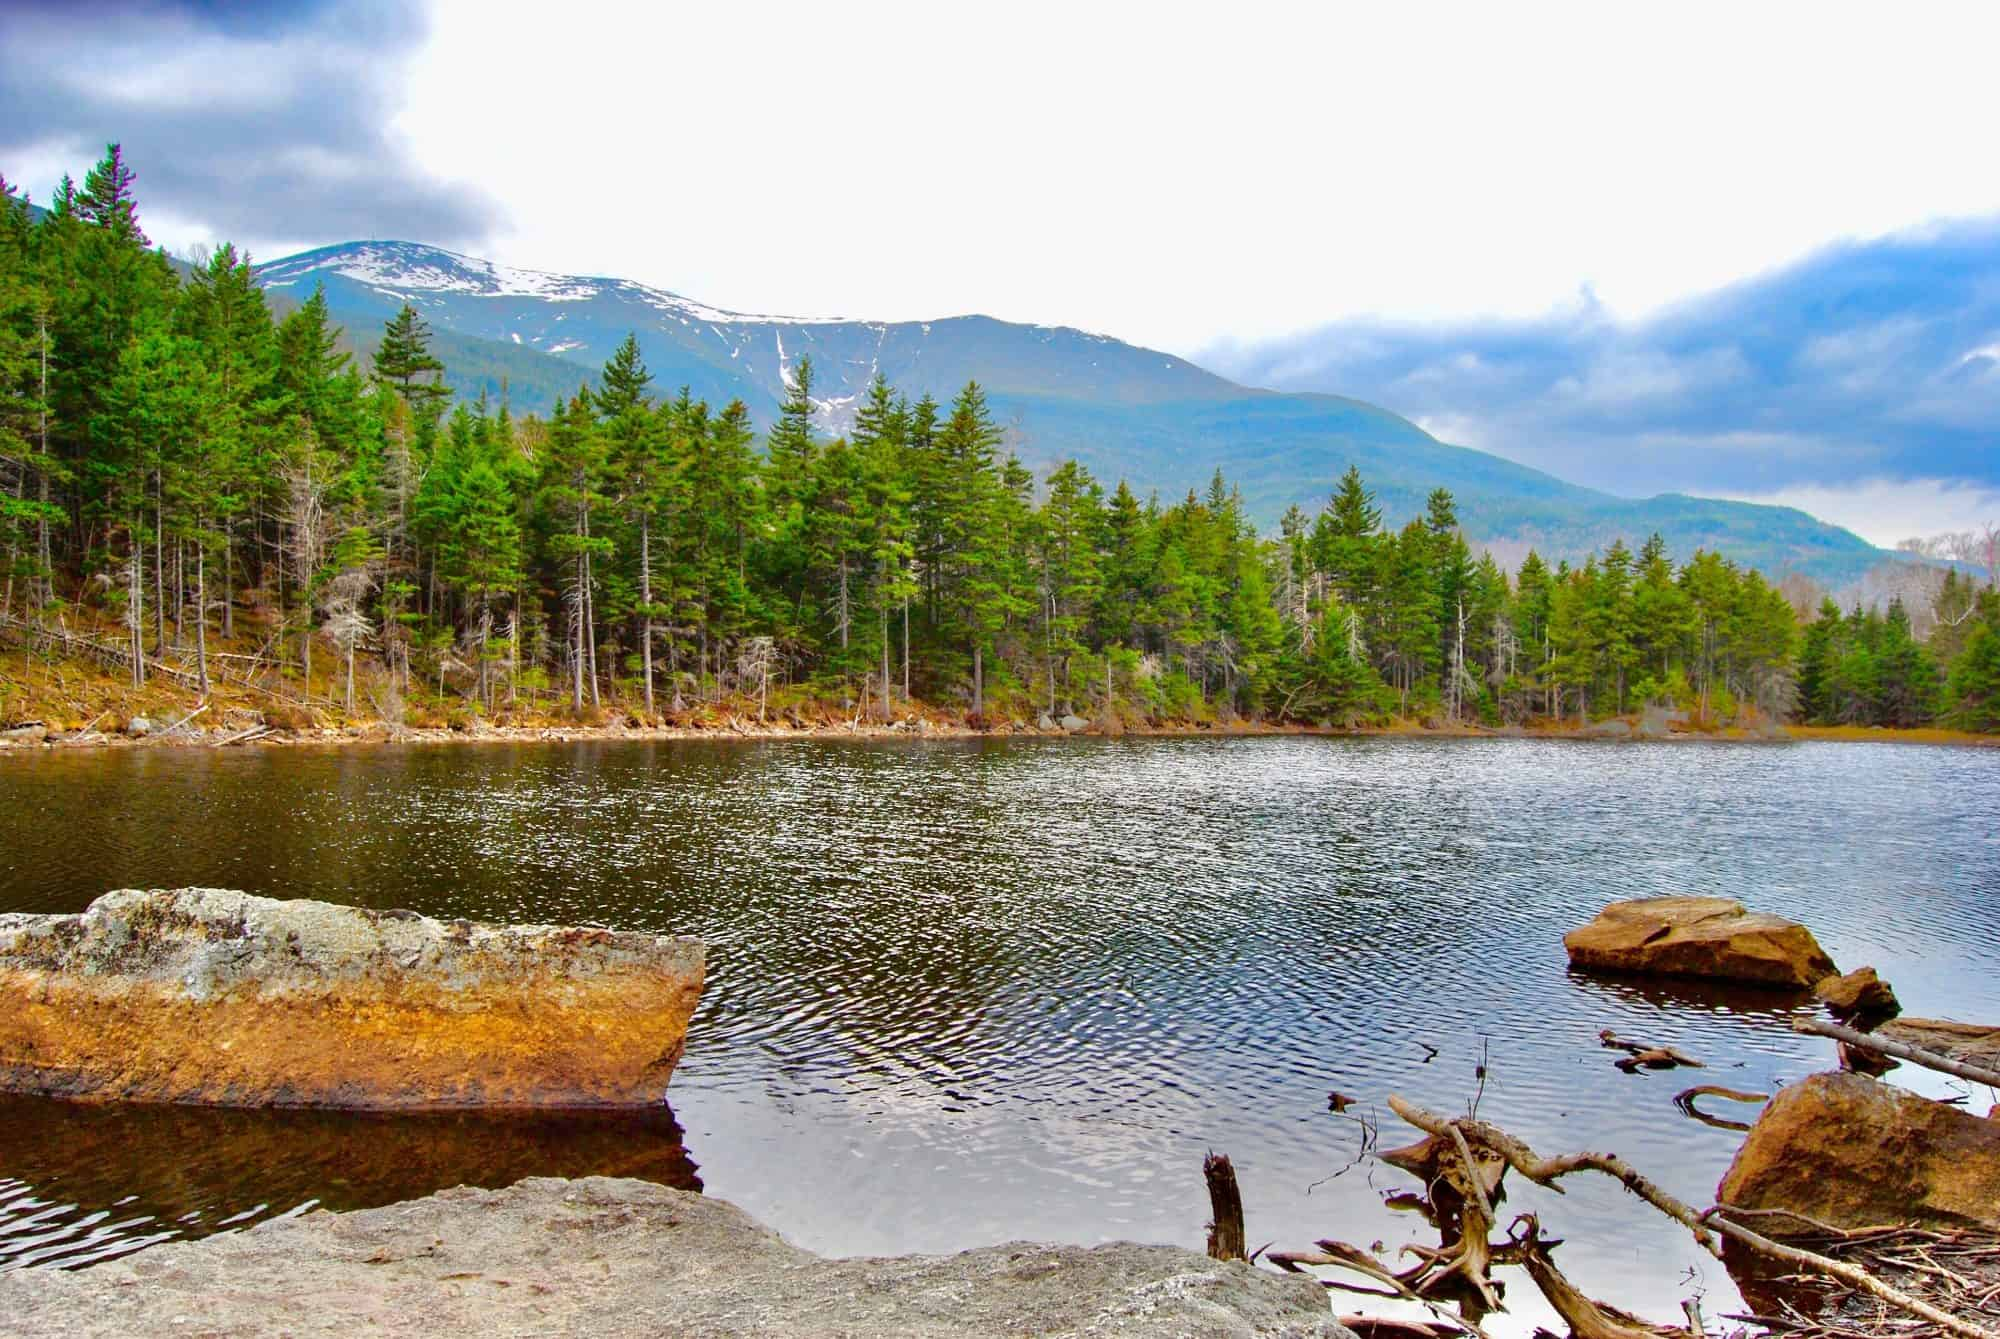 Huttopia: Glamping in the White Mountains of New Hampshire